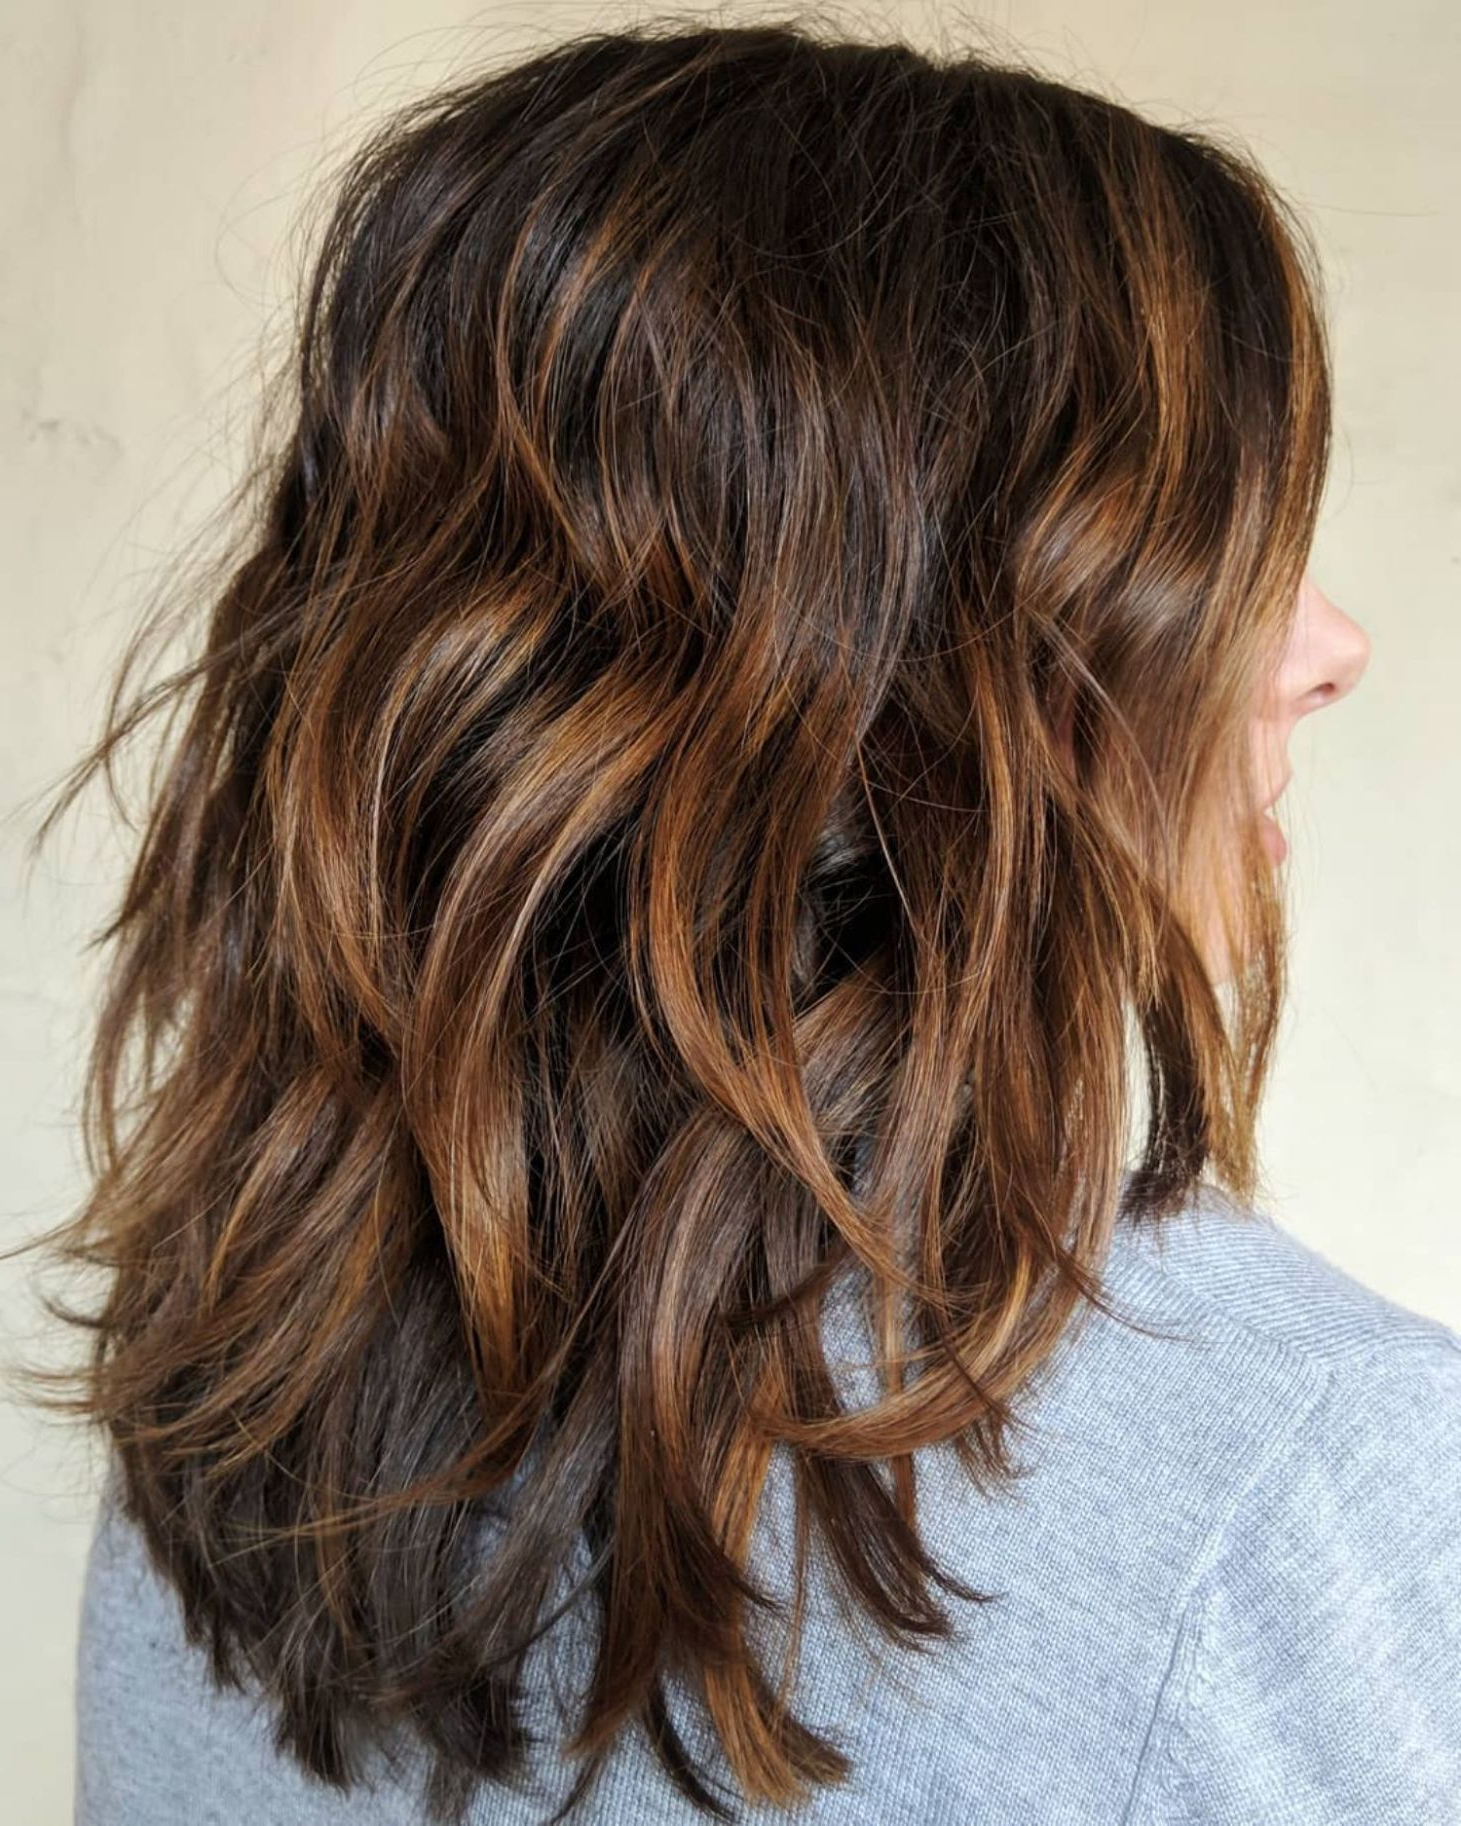 80 Sensational Medium Length Haircuts For Thick Hair In 2019 Regarding Newest Shiny Brunette Shag Haircuts For Long Hair (View 2 of 20)